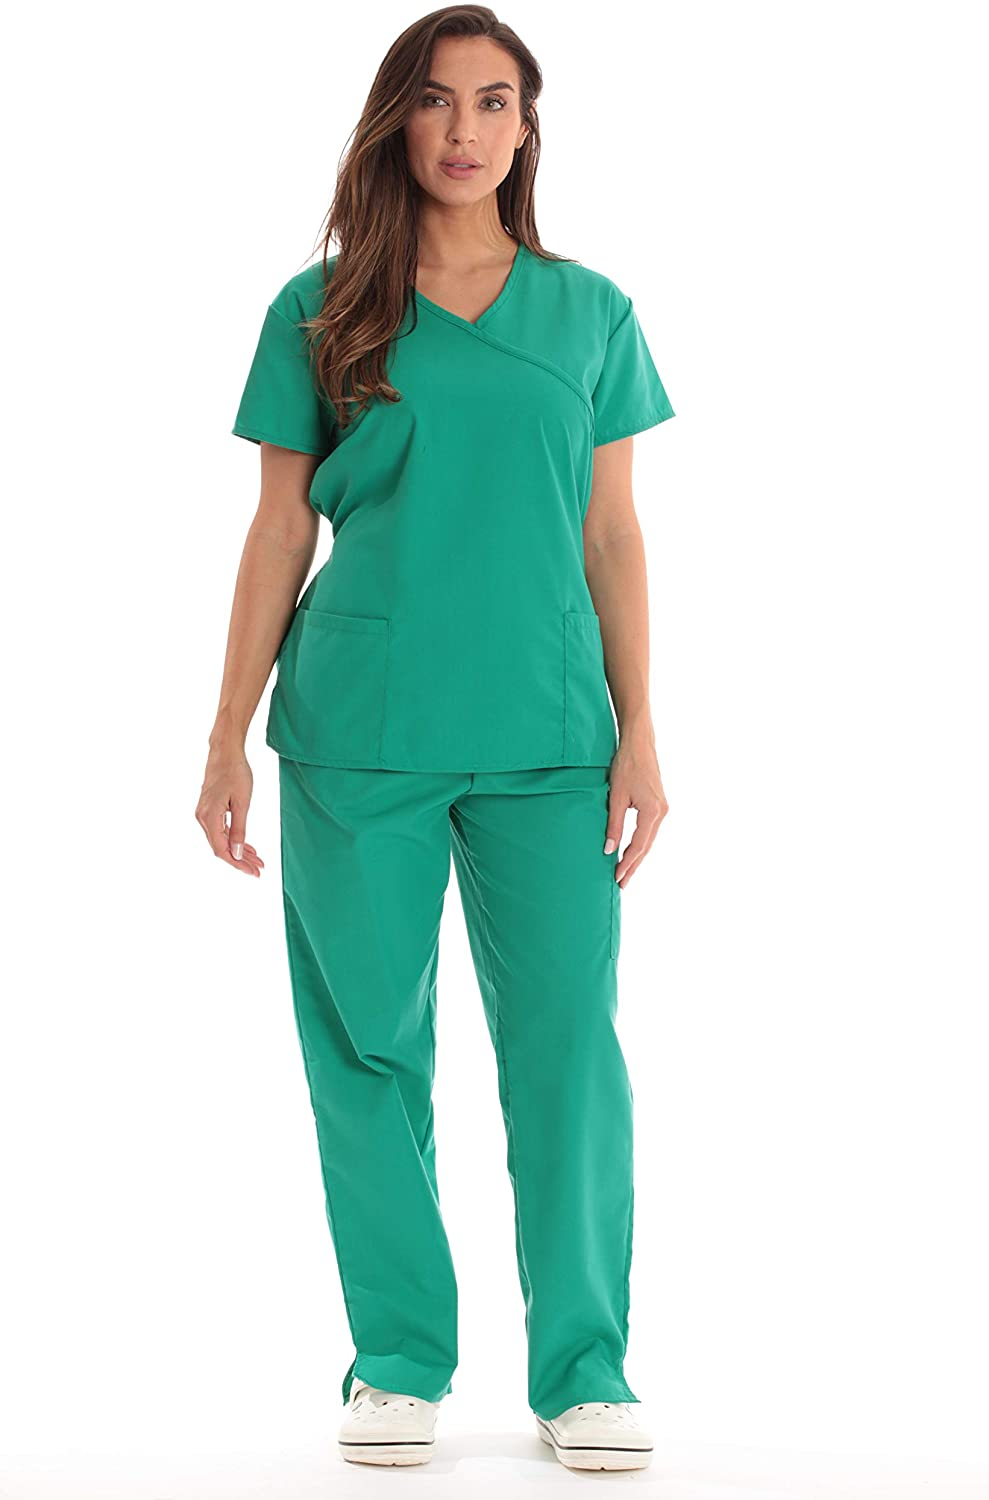 Just Store Fashionable Love Women's Scrub Sets Back Tie Medical Scrubs